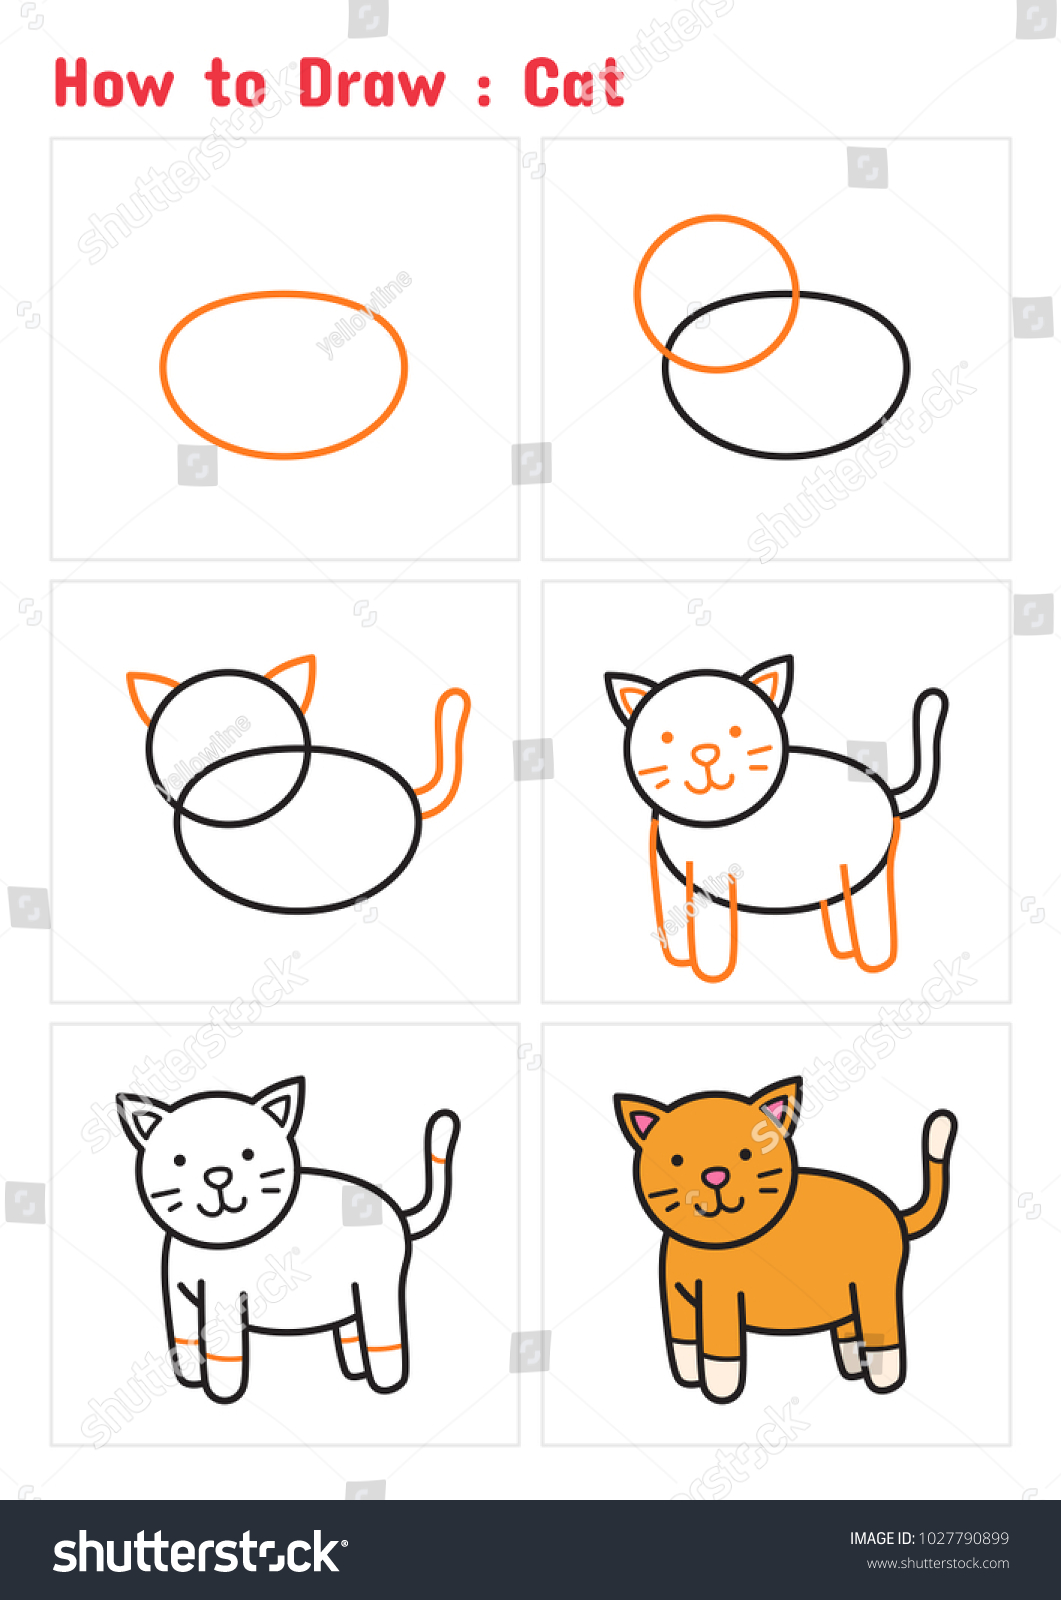 How to draw a cat step by step tutorial for children